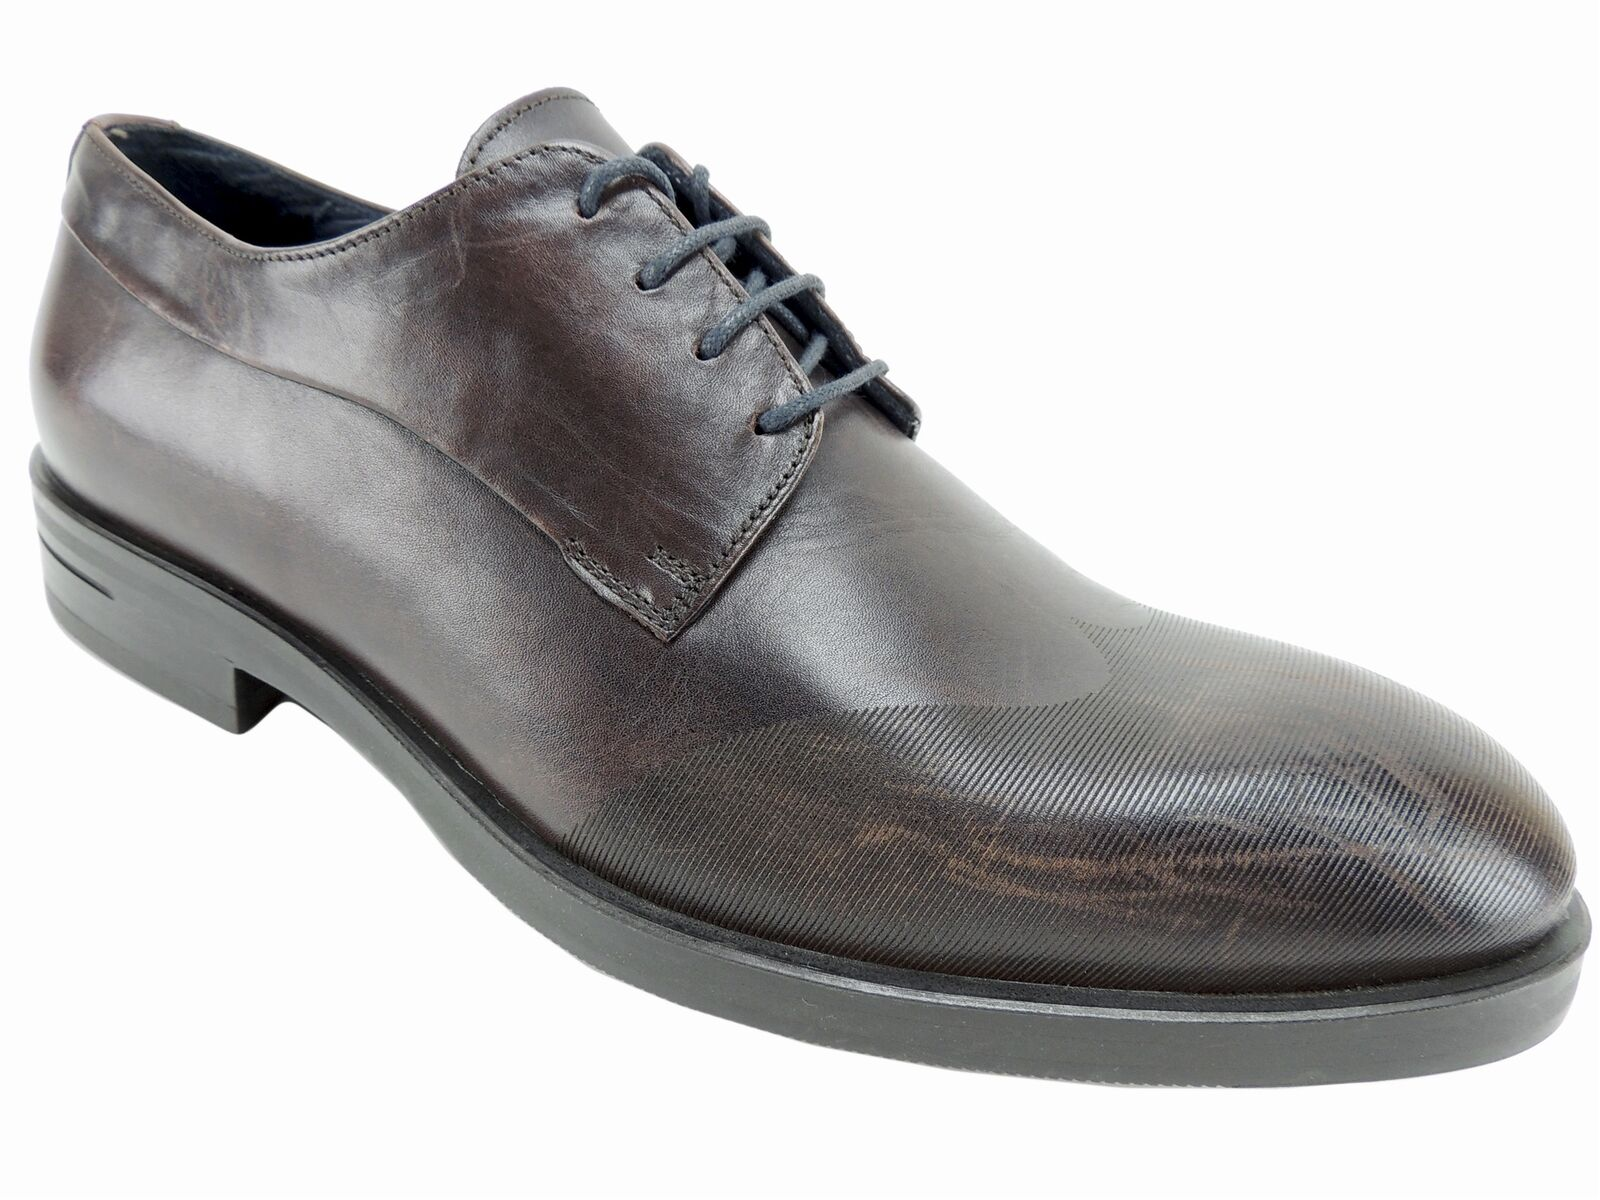 Kenneth Cole New York Men's Catch Phrase Wingtip Oxfords Brown Leather Size 9 M